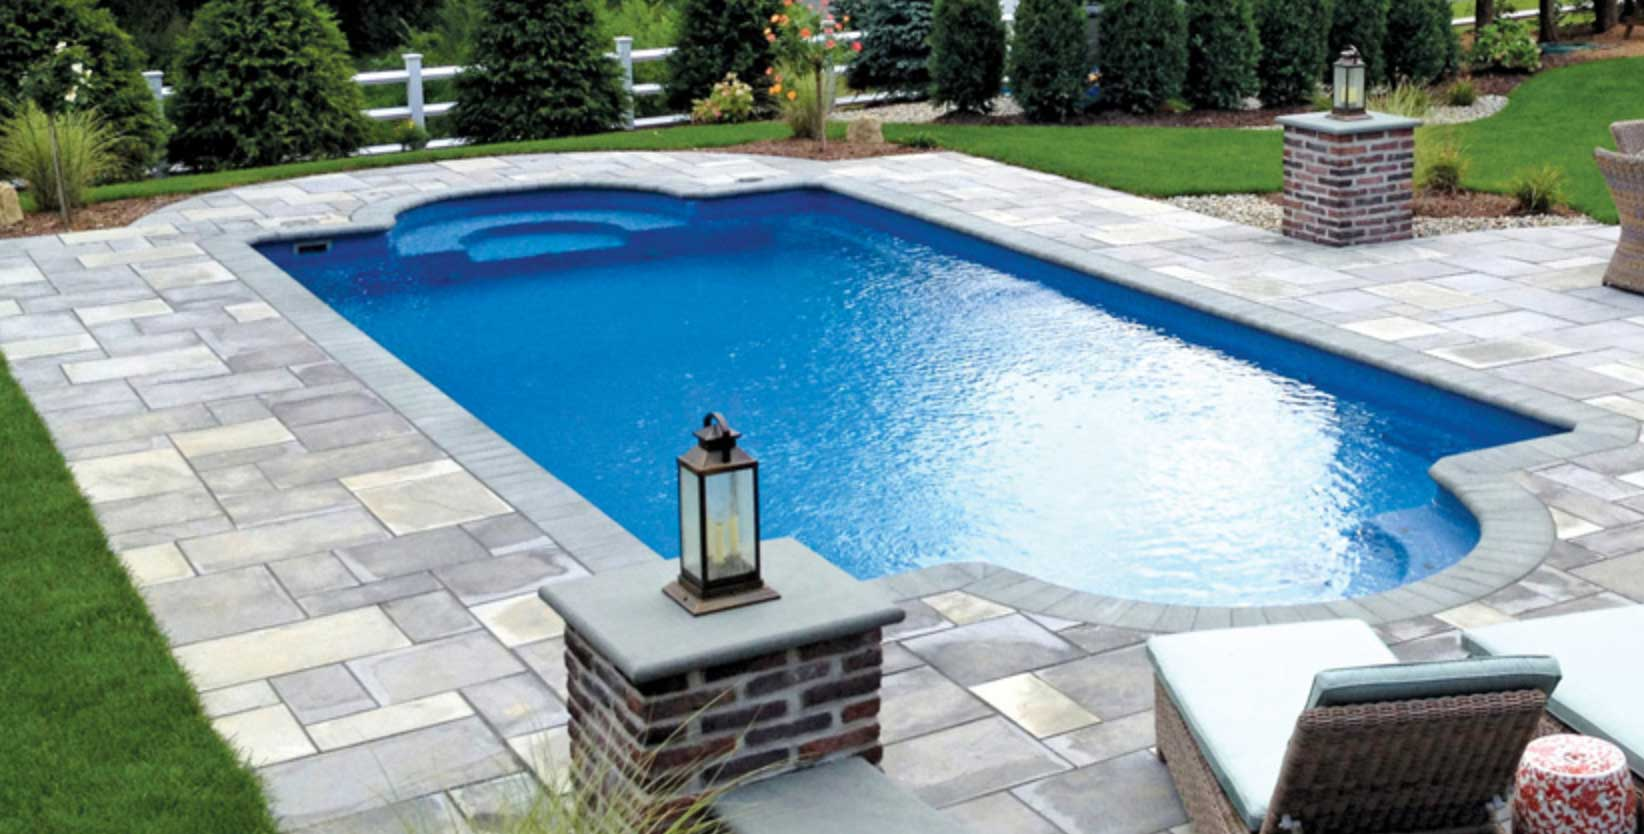 Should I Buy a Fiberglass Pool? | Aloha Pools and Spas